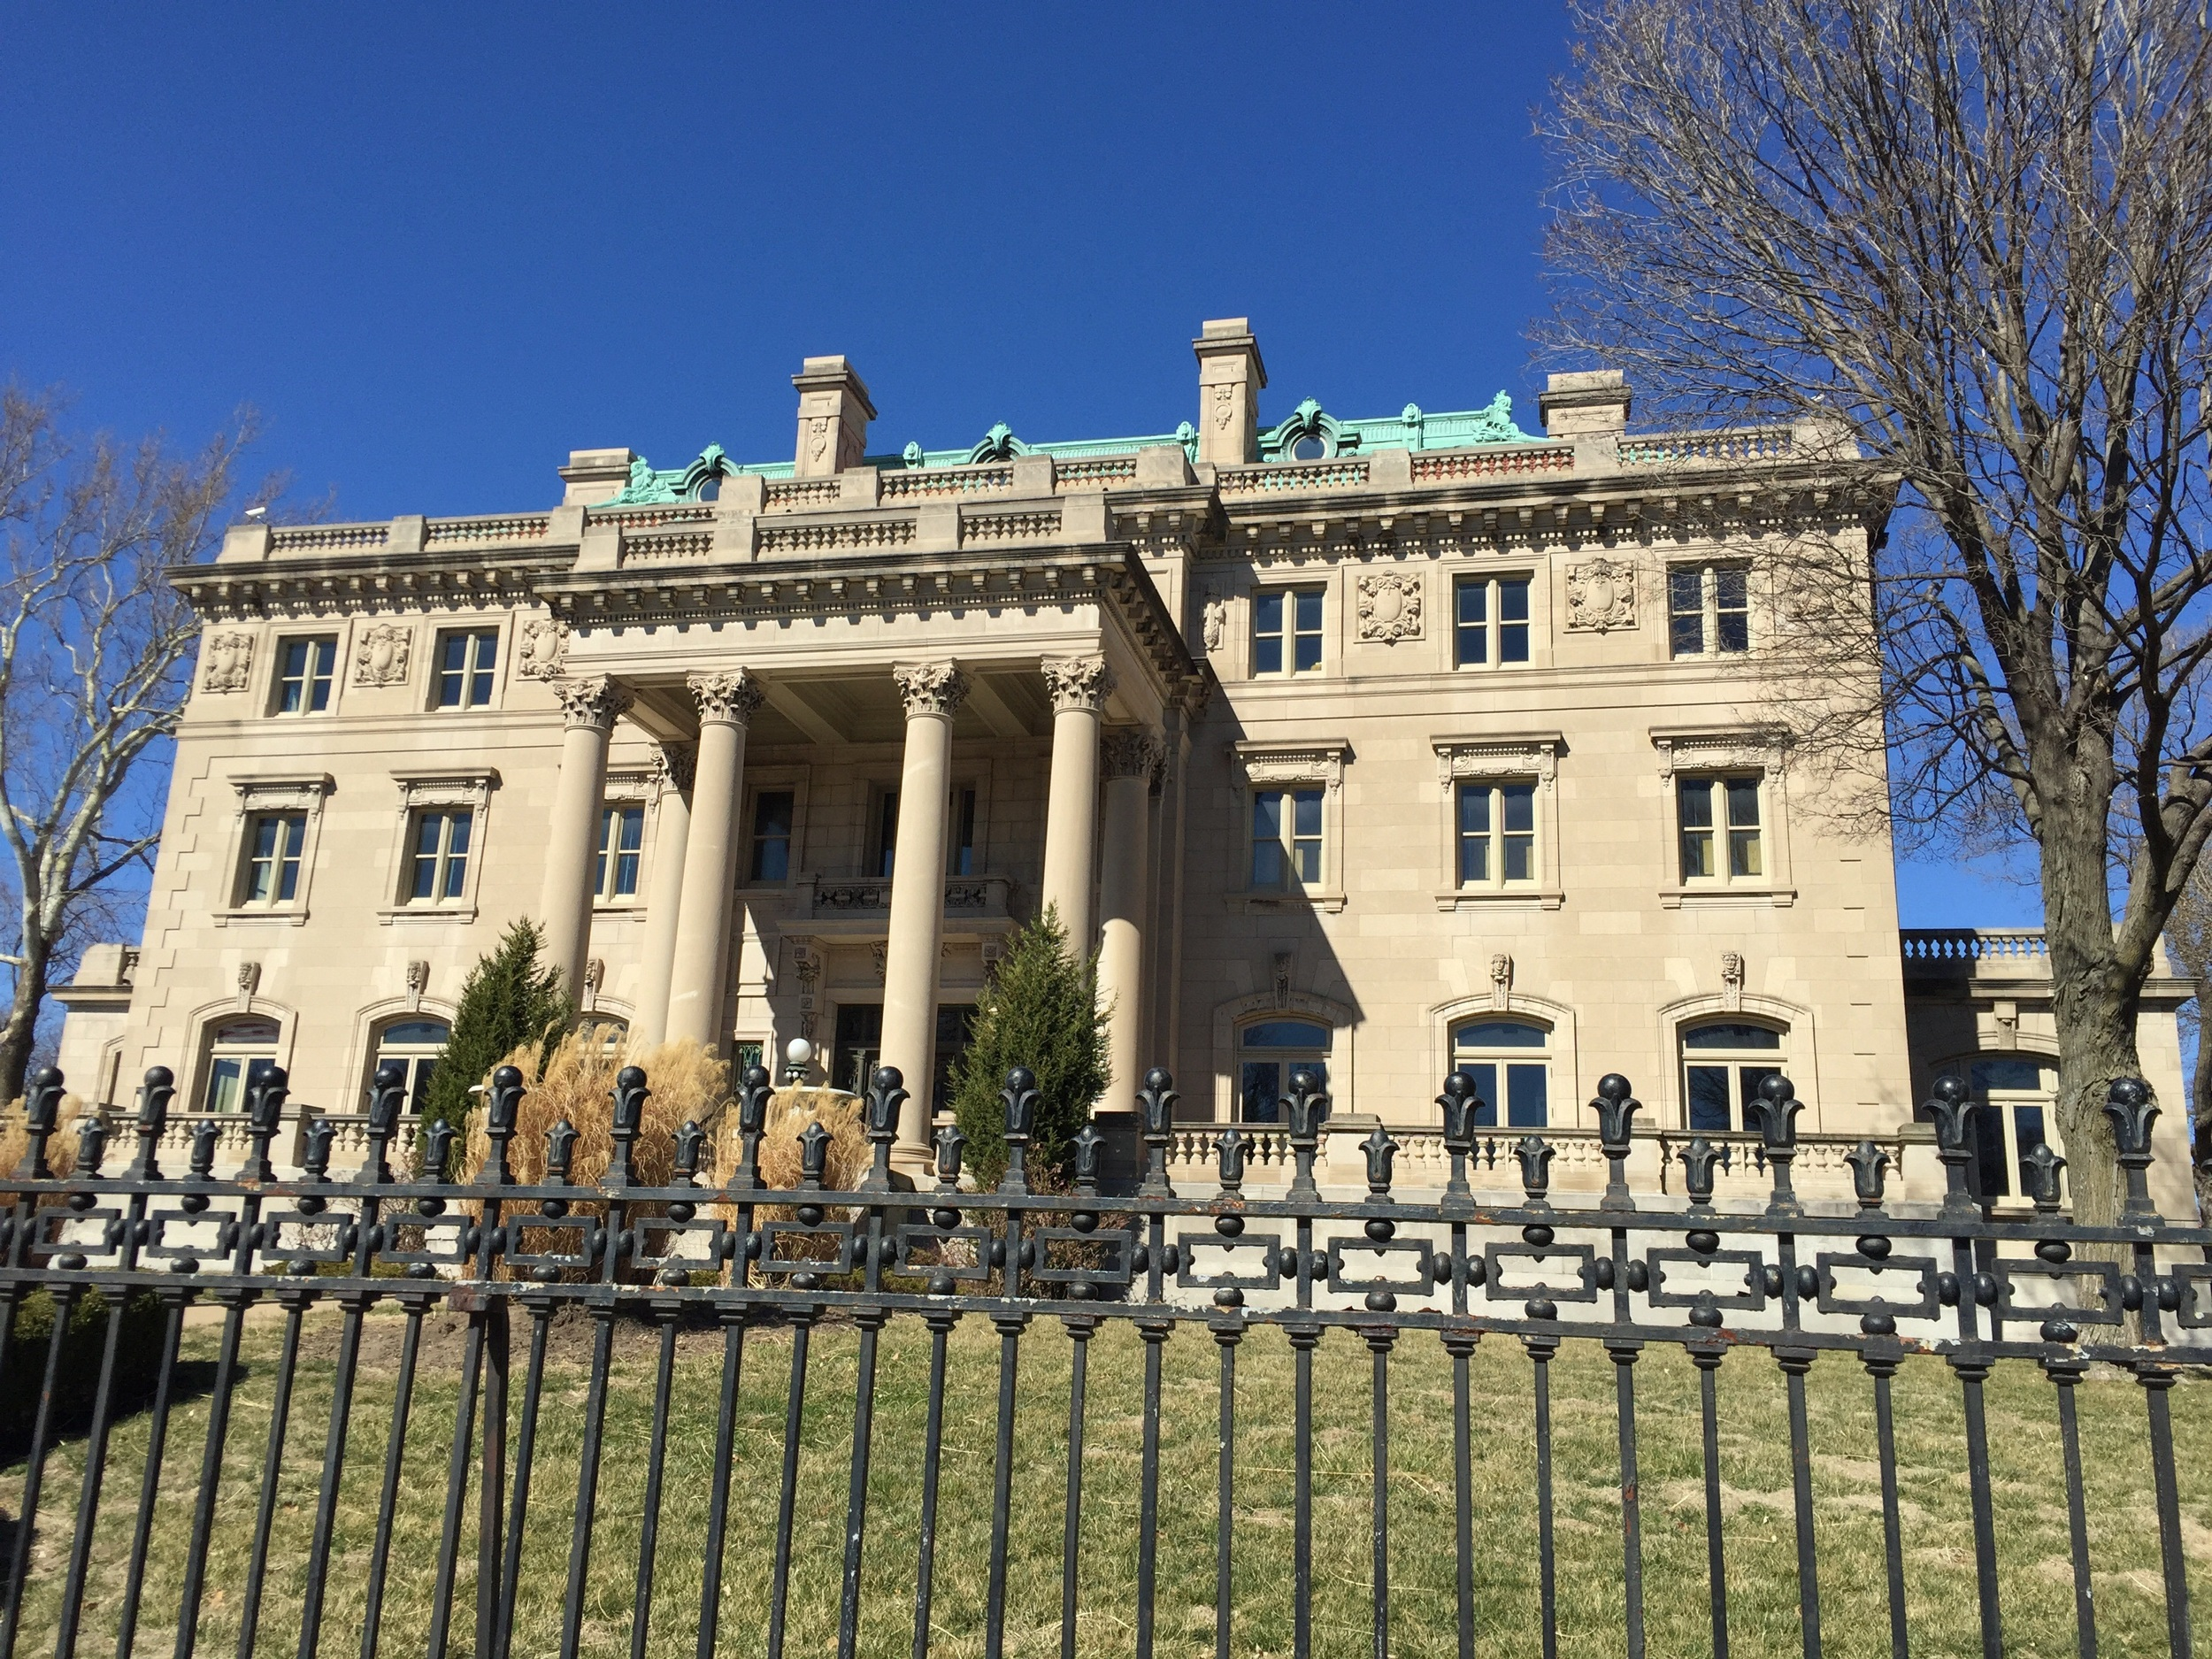 Four stories and a basement. 6 Corinthian Columns in front giving it the name Corinthian Hall.